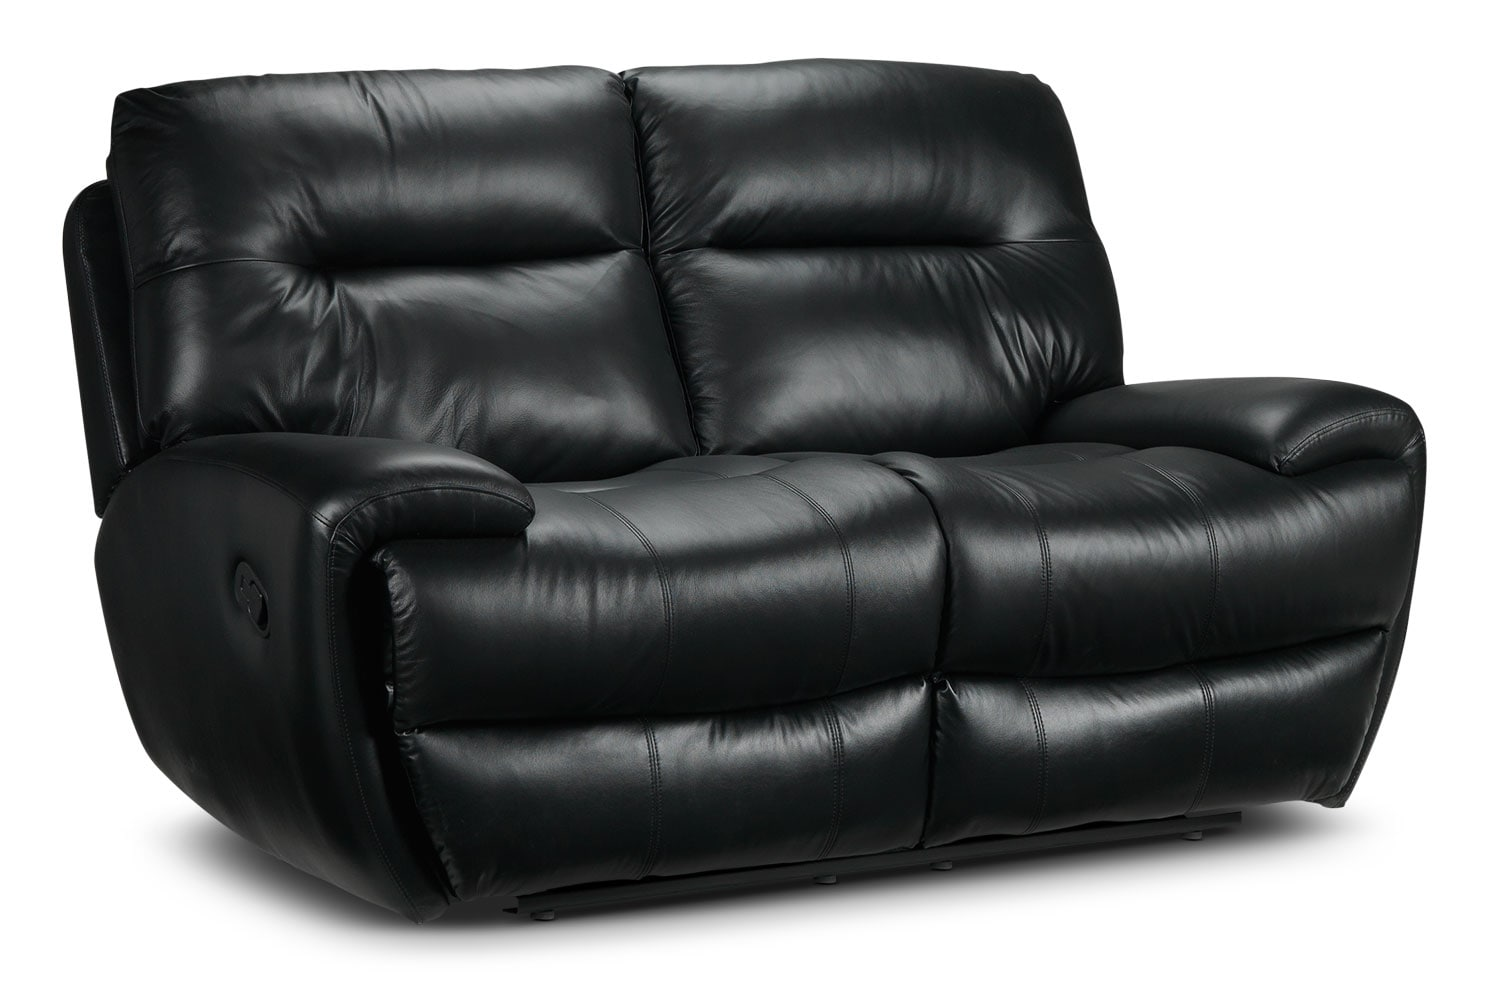 Living Room Furniture - Baily Reclining Loveseat